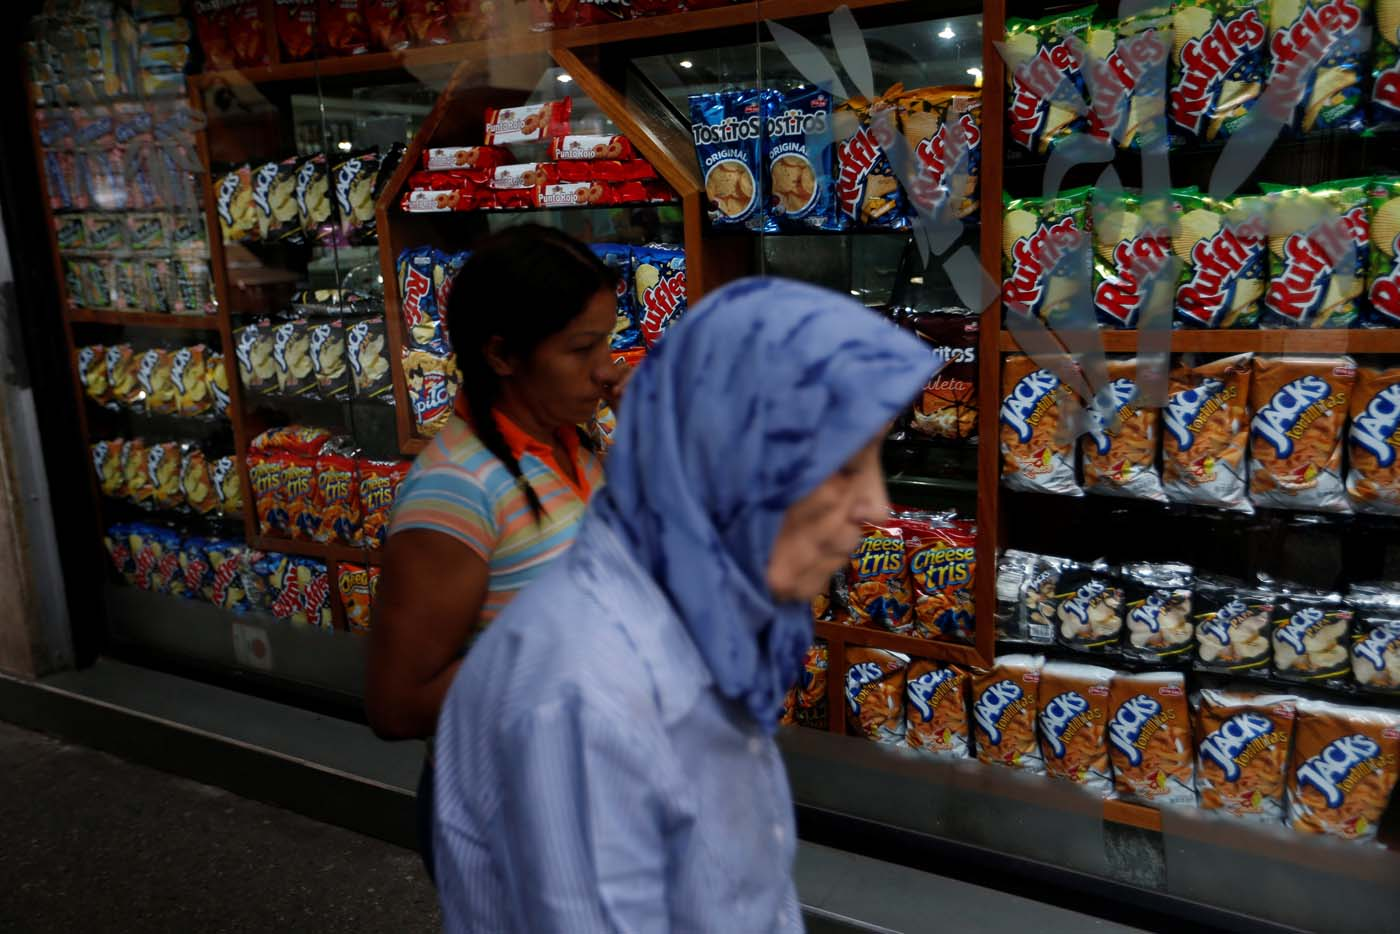 Two women walk past a store in Caracas, Venezuela, August 9, 2017. REUTERS/Andres Martinez Casares